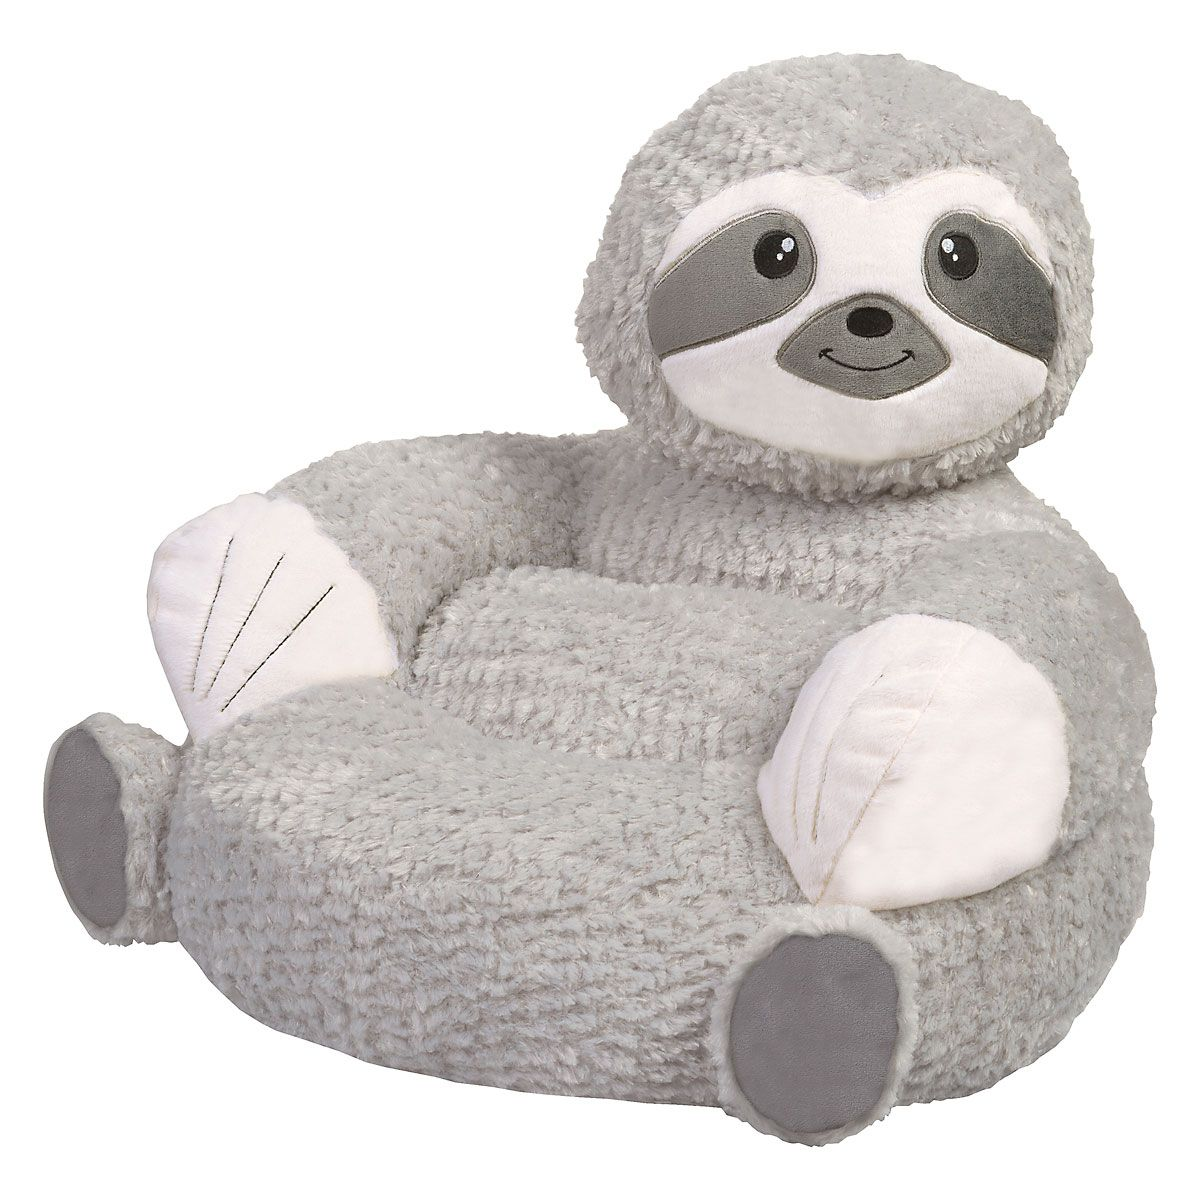 Sloth Children's Plush Chair The Sloth Plush Character Chair brings delightful whimsy to your little one's world and to any room of the house. Perfect for reading, relaxing, snuggling. Soft outer surface is ideal for cuddling and hugging. Measures 21  x 19  x 19  with contoured support. 100% polyester plush with 100% polyester fill. Spot clean only; use a damp cloth. Suitable for most children ages 12 months and up. Standard shipping only. Expedited shipping not available. Cannot be sent outside the 48 contiguous states, or to P.O. Box, APO/FPO, or foreign addresses.